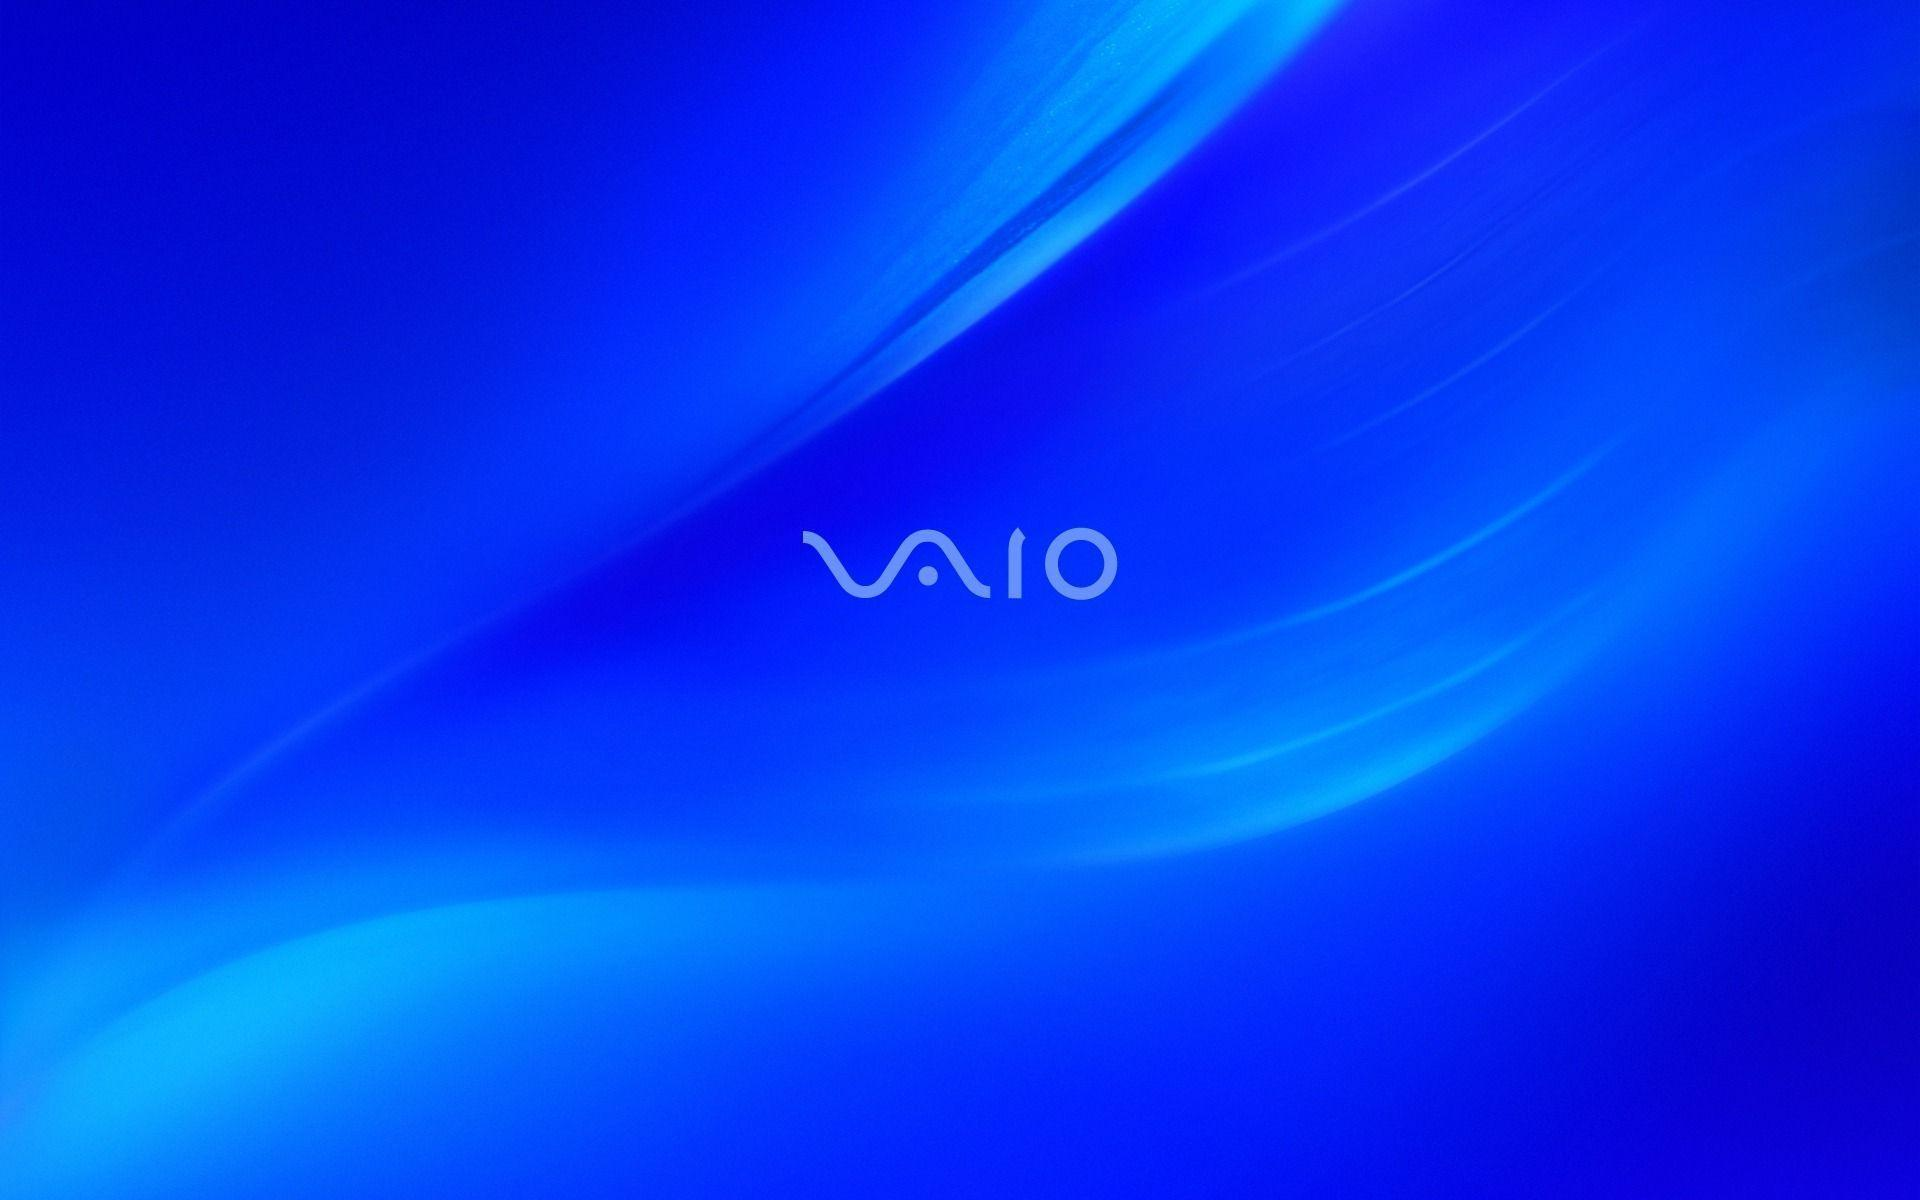 wallpapers for sony vaio laptop free download